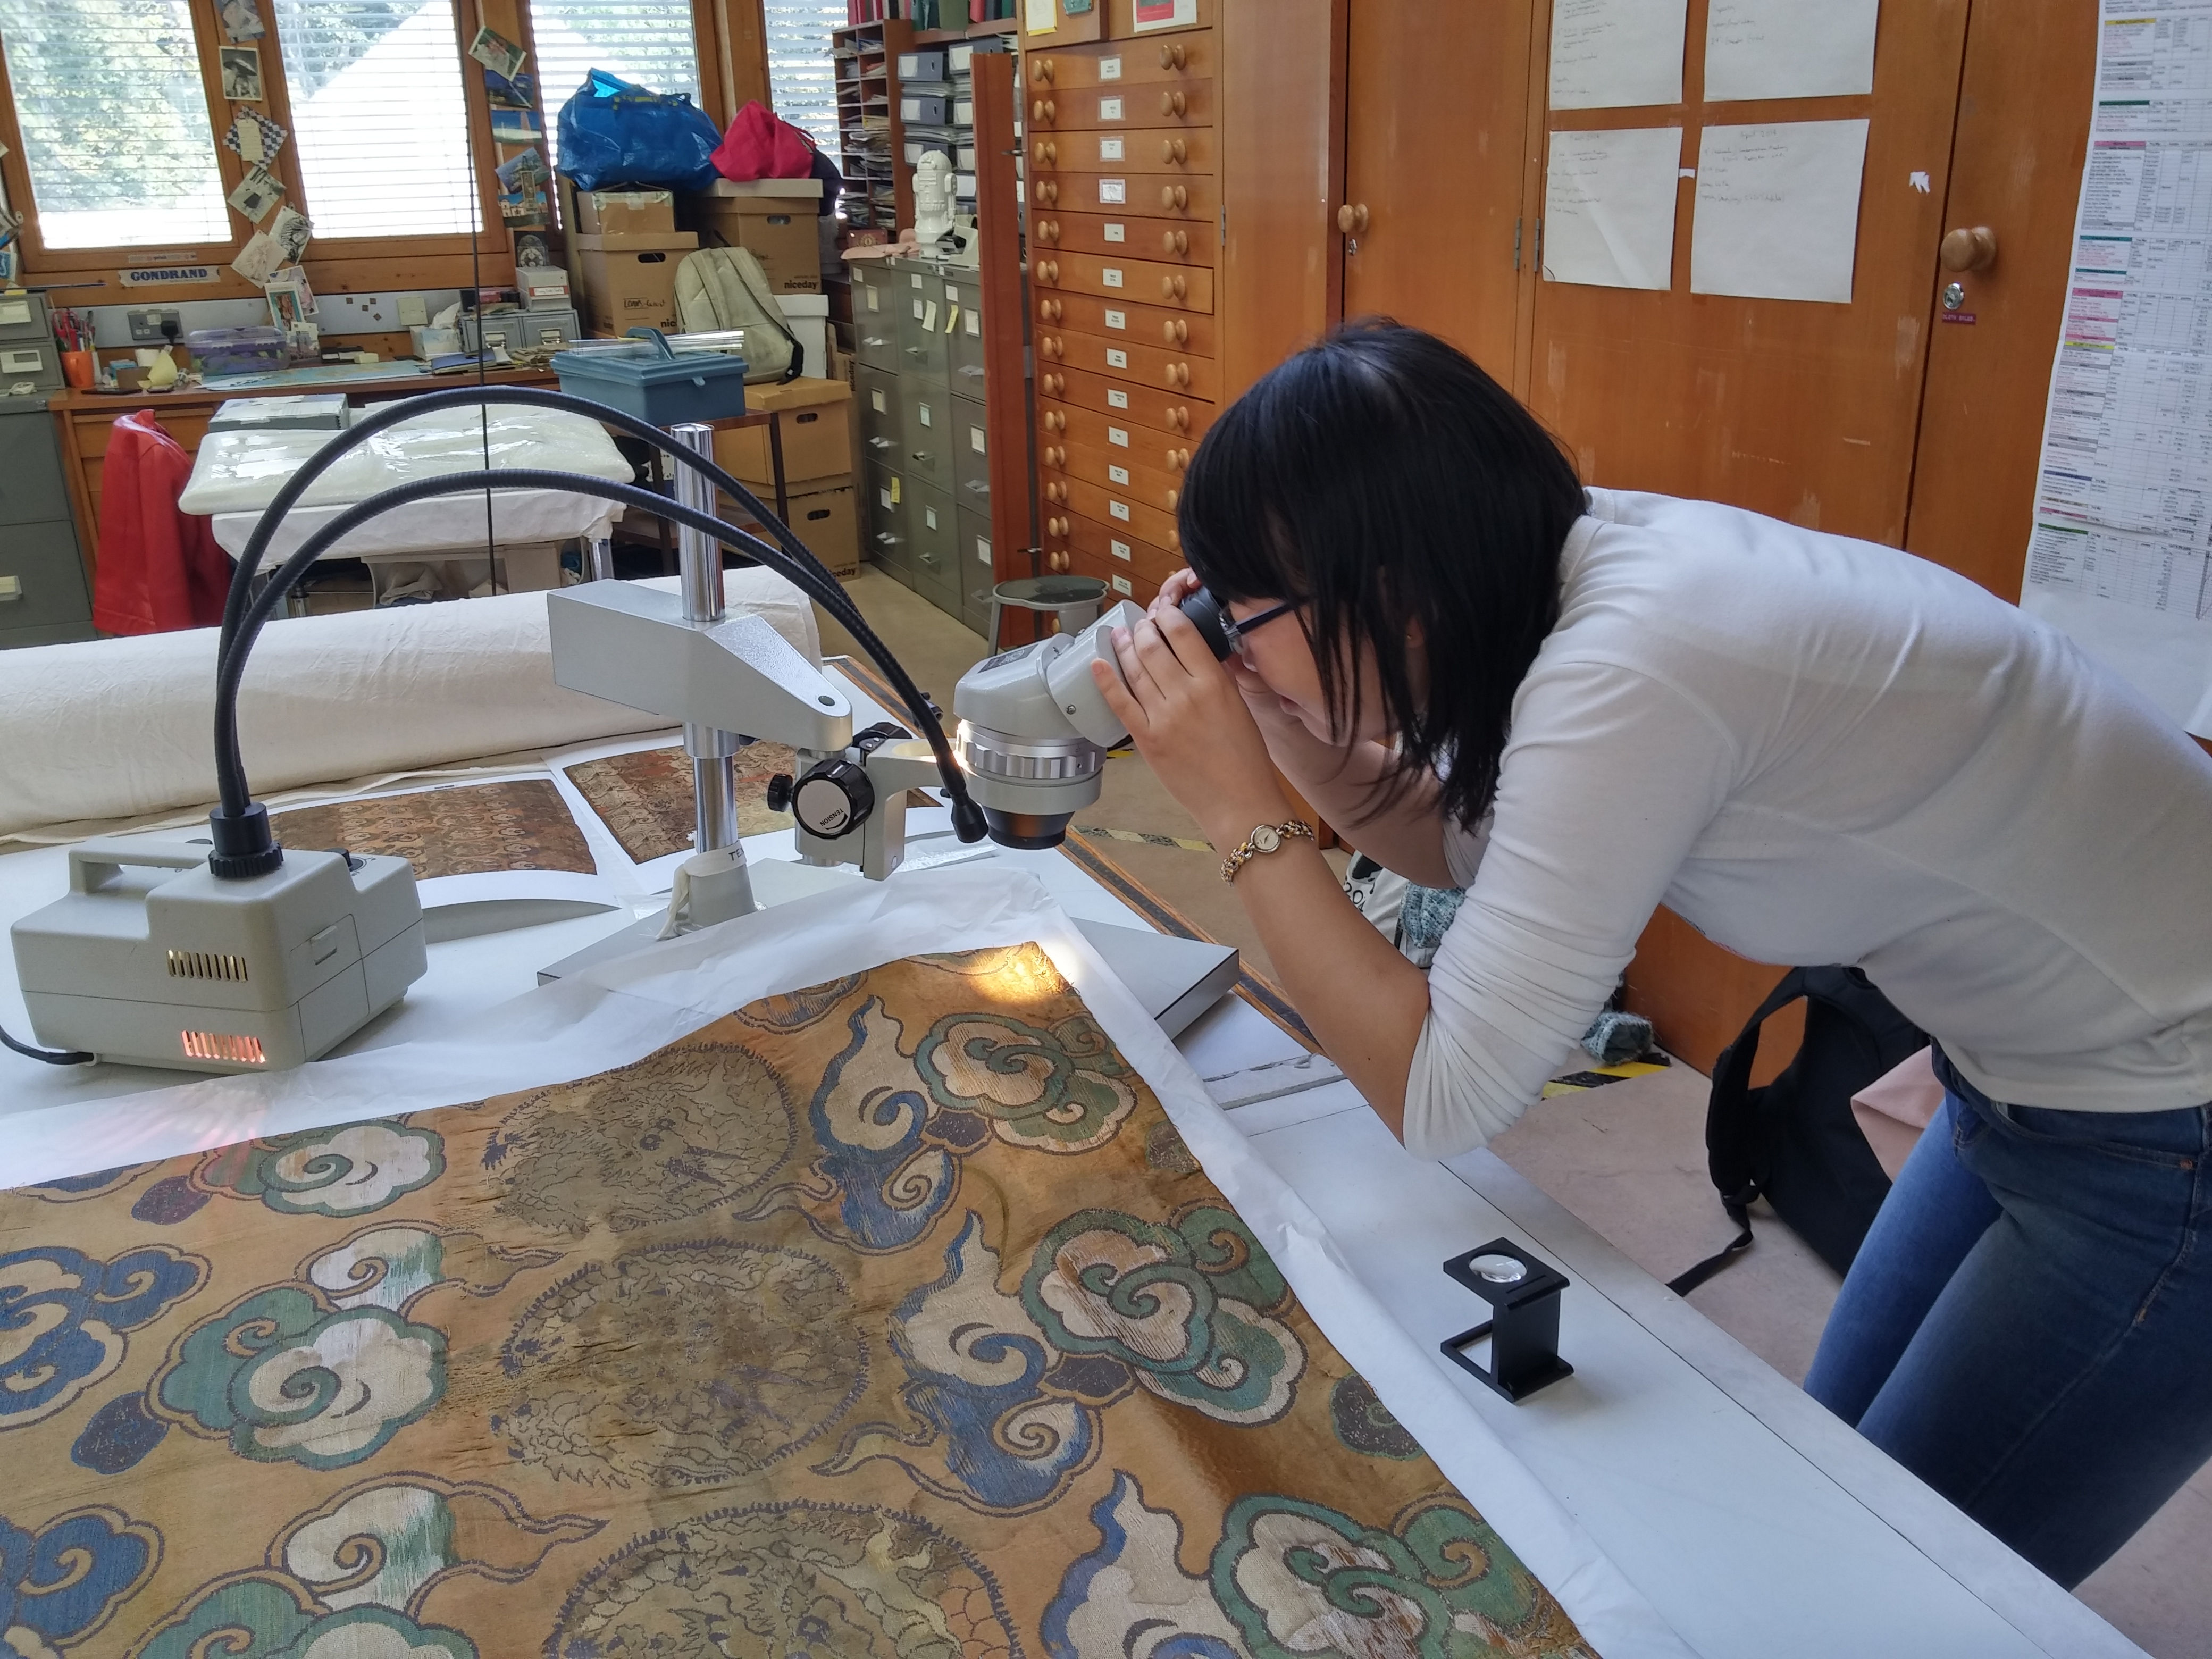 Jing Han examining a Chinese textile in the Glasgow Life collections